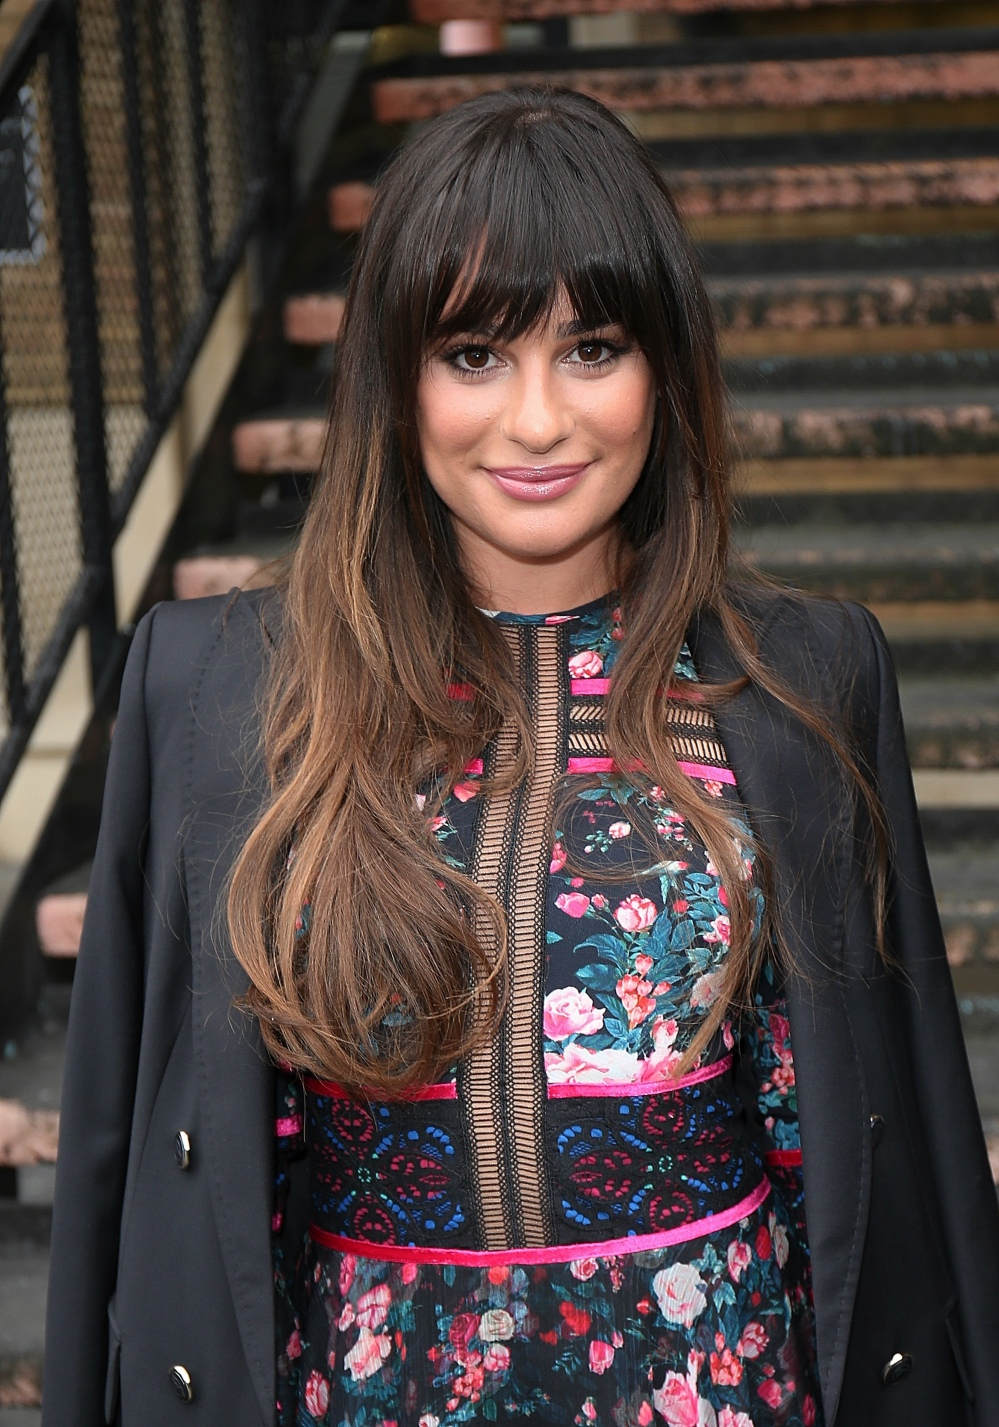 EXC: Lea Michele arrives at the Sunday Brunch studios in London